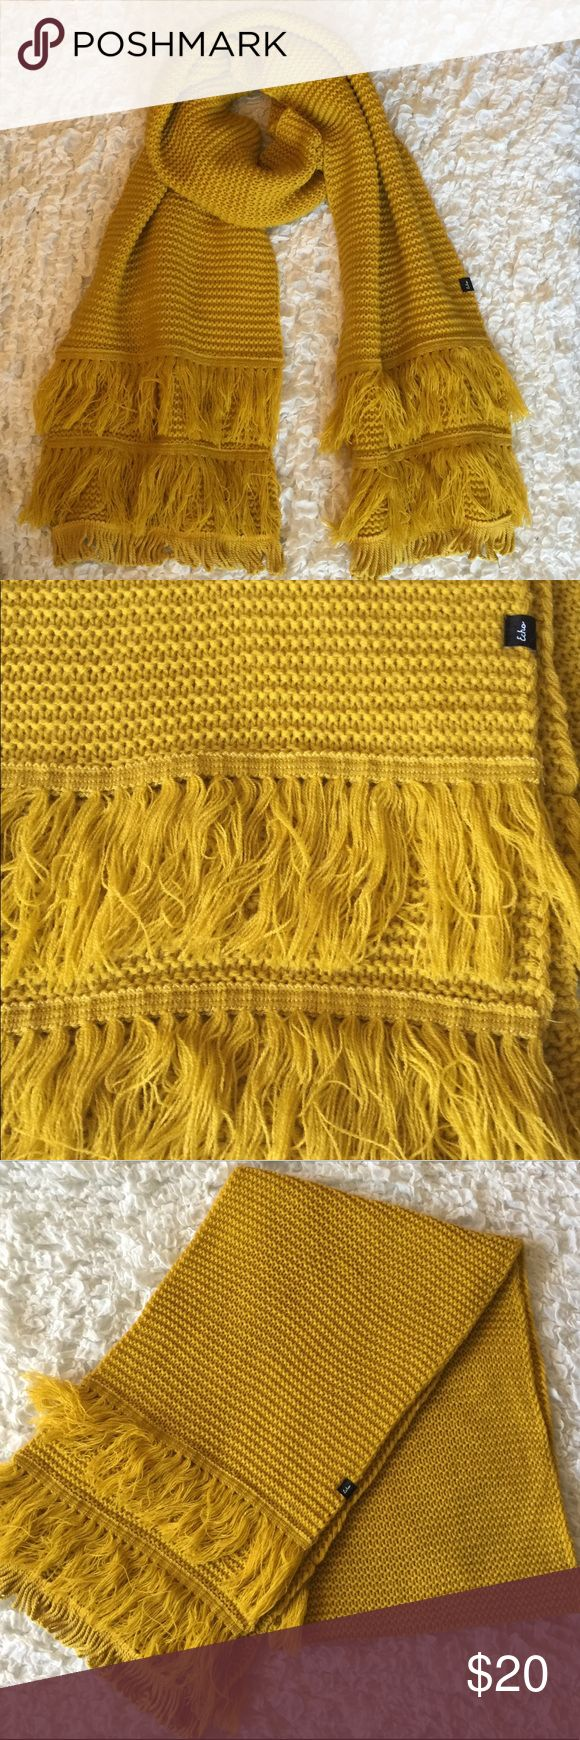 Echo Fringy Muffler Scarf Add a pop of color to your outfit with this cozy and warm Echo Scarf in mustard yellow. Perfect for the fall weather.   Measures 12in wide and 82 in long. Does have a few minor snags on the back side of the scarf that aren't noticeable from the front. Echo Accessories Scarves & Wraps